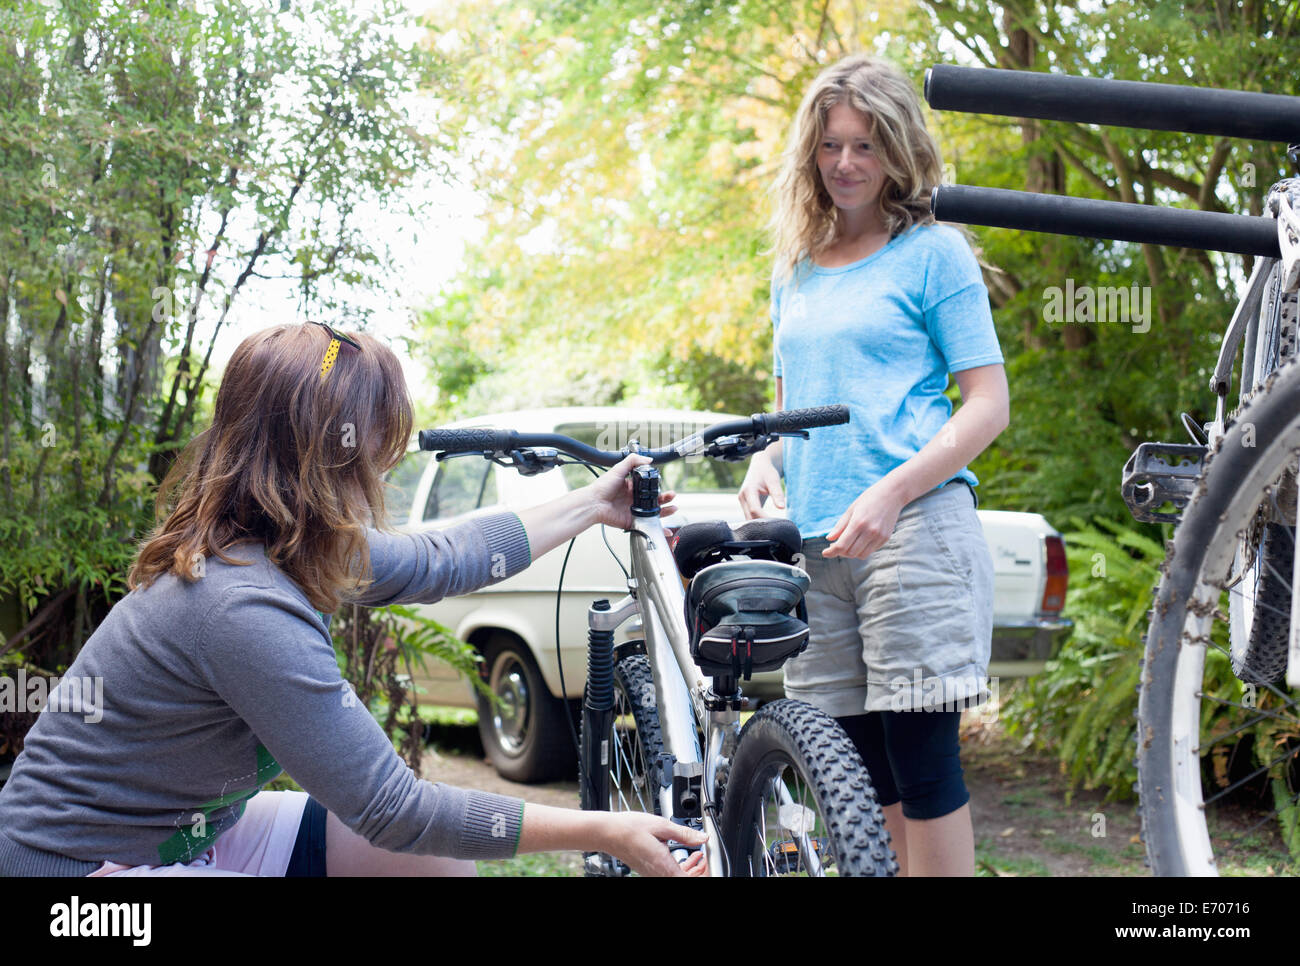 Two women mountain bikers checking cycles in forest - Stock Image